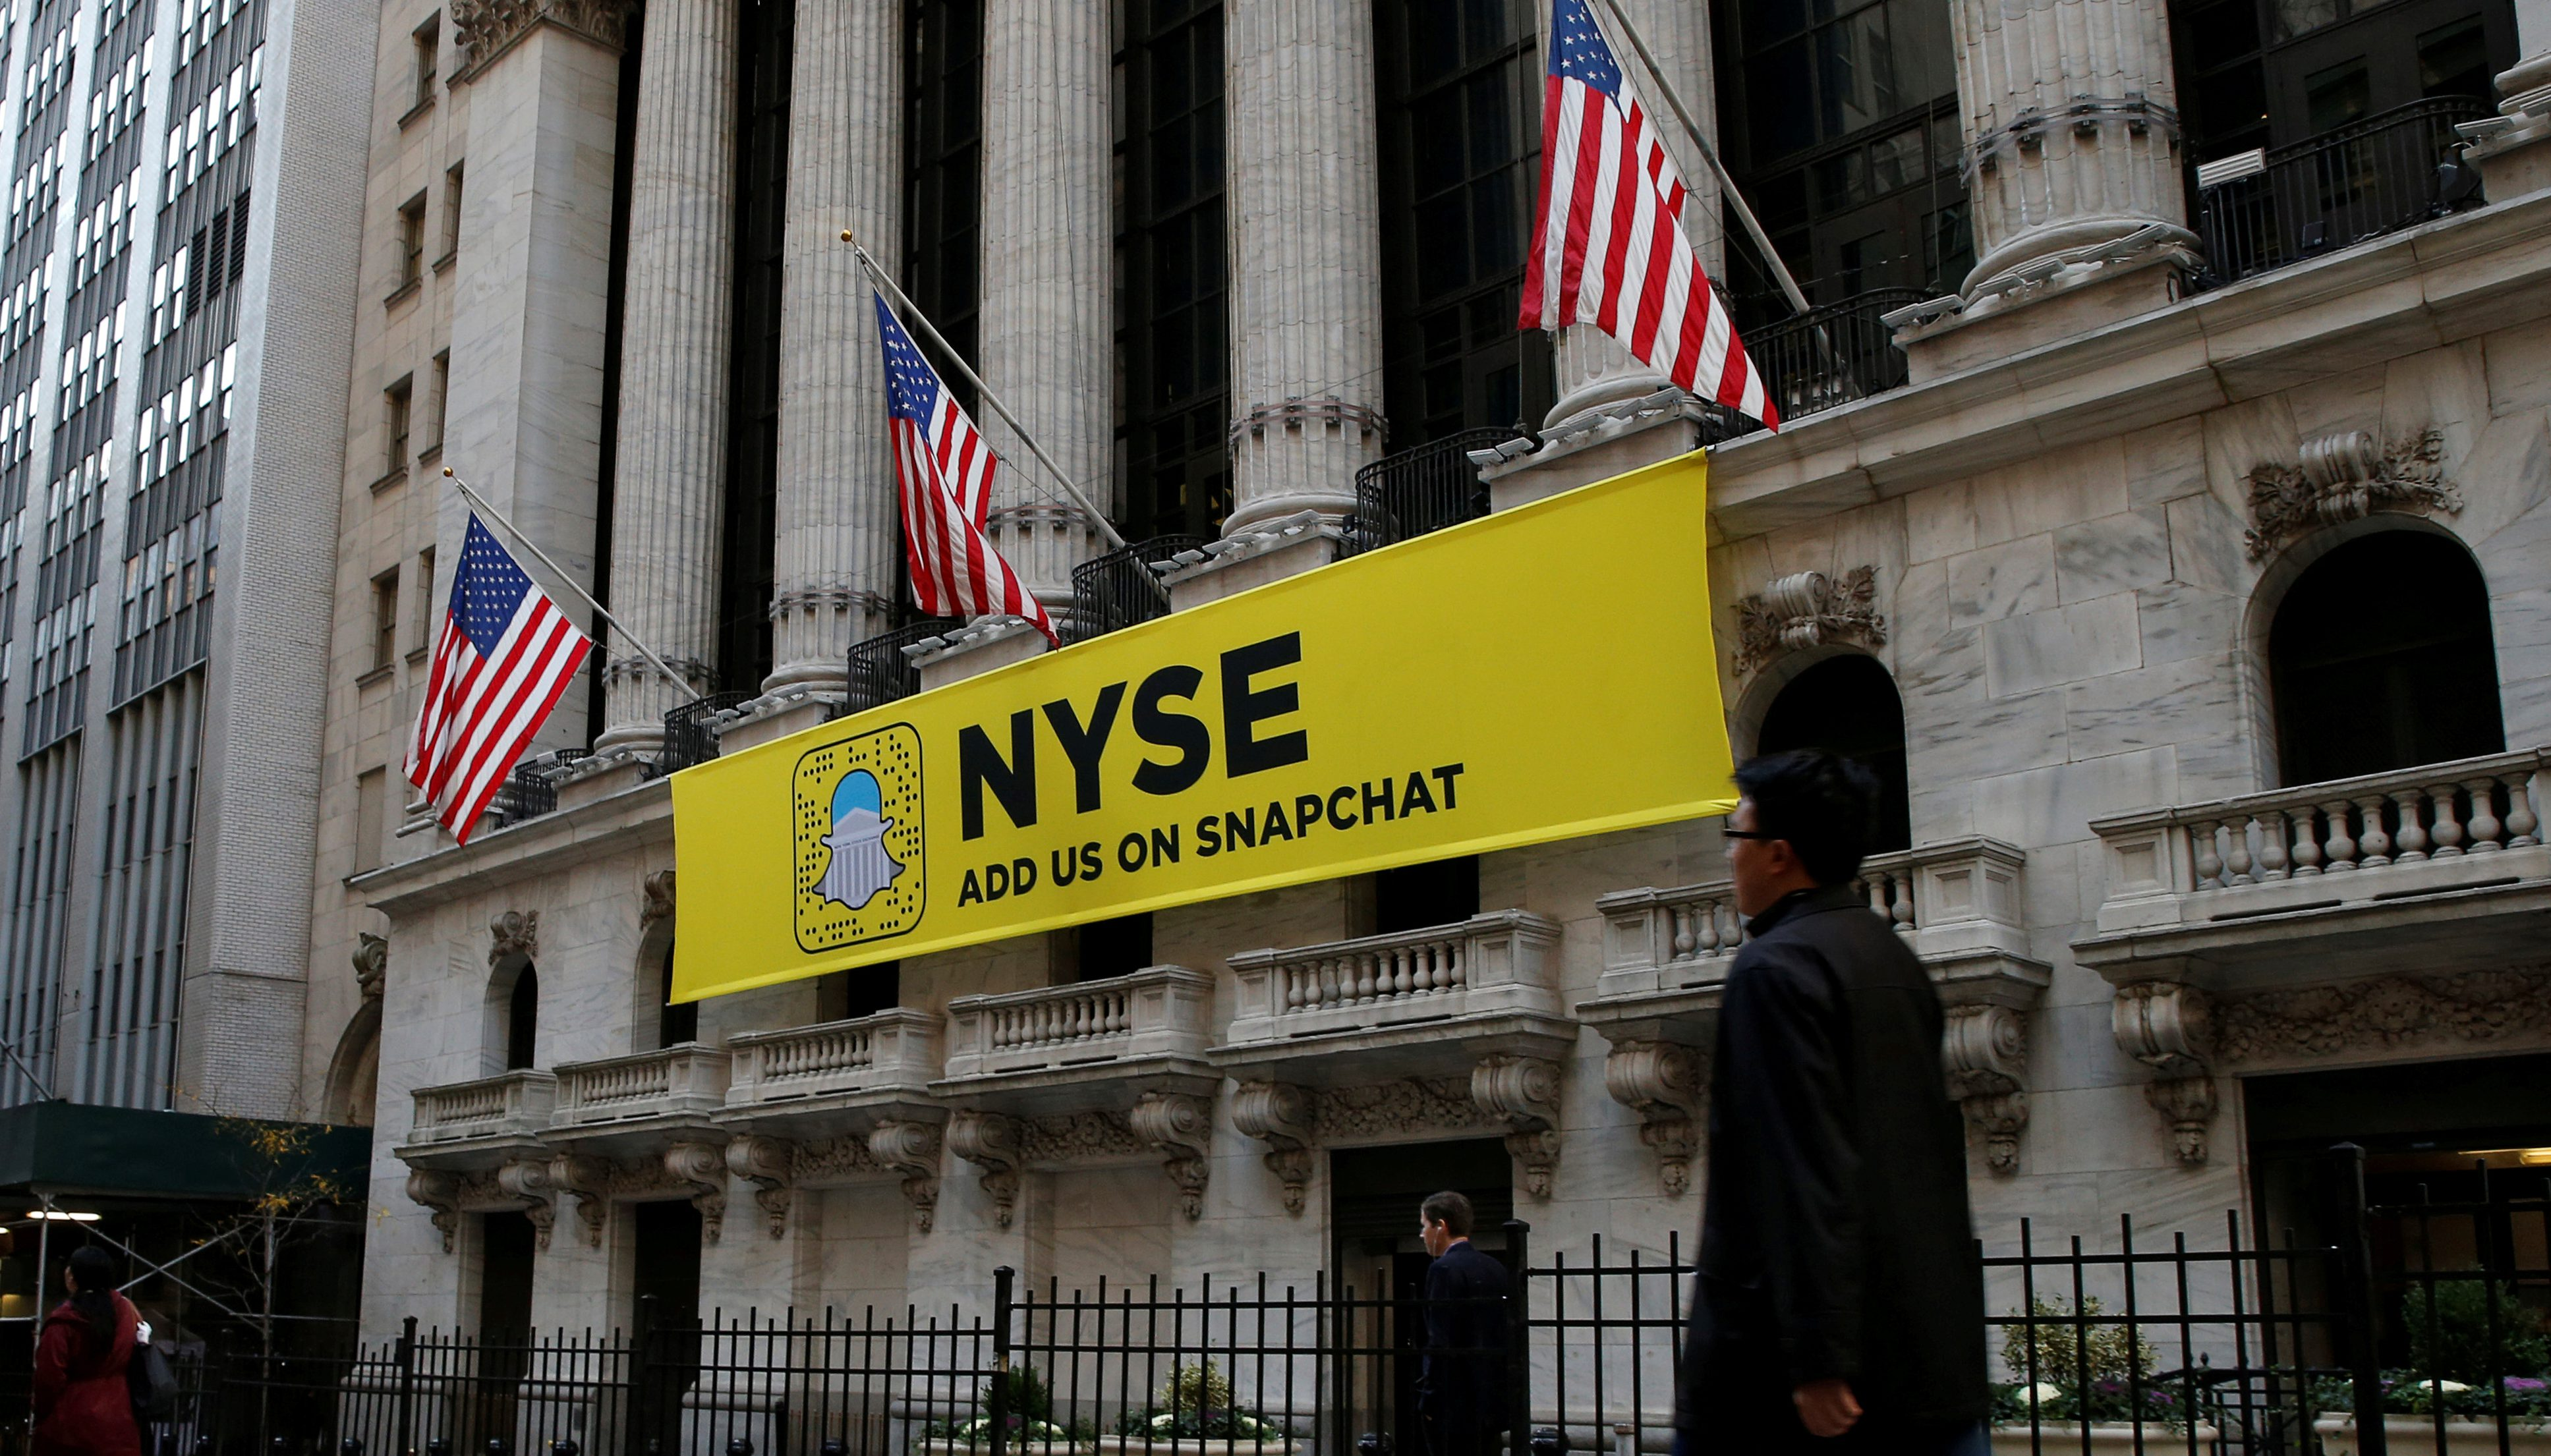 The Snapchat logo is seen on a banner outside the New York Stock Exchange (NYSE) in New York City, U.S., November 16, 2016.